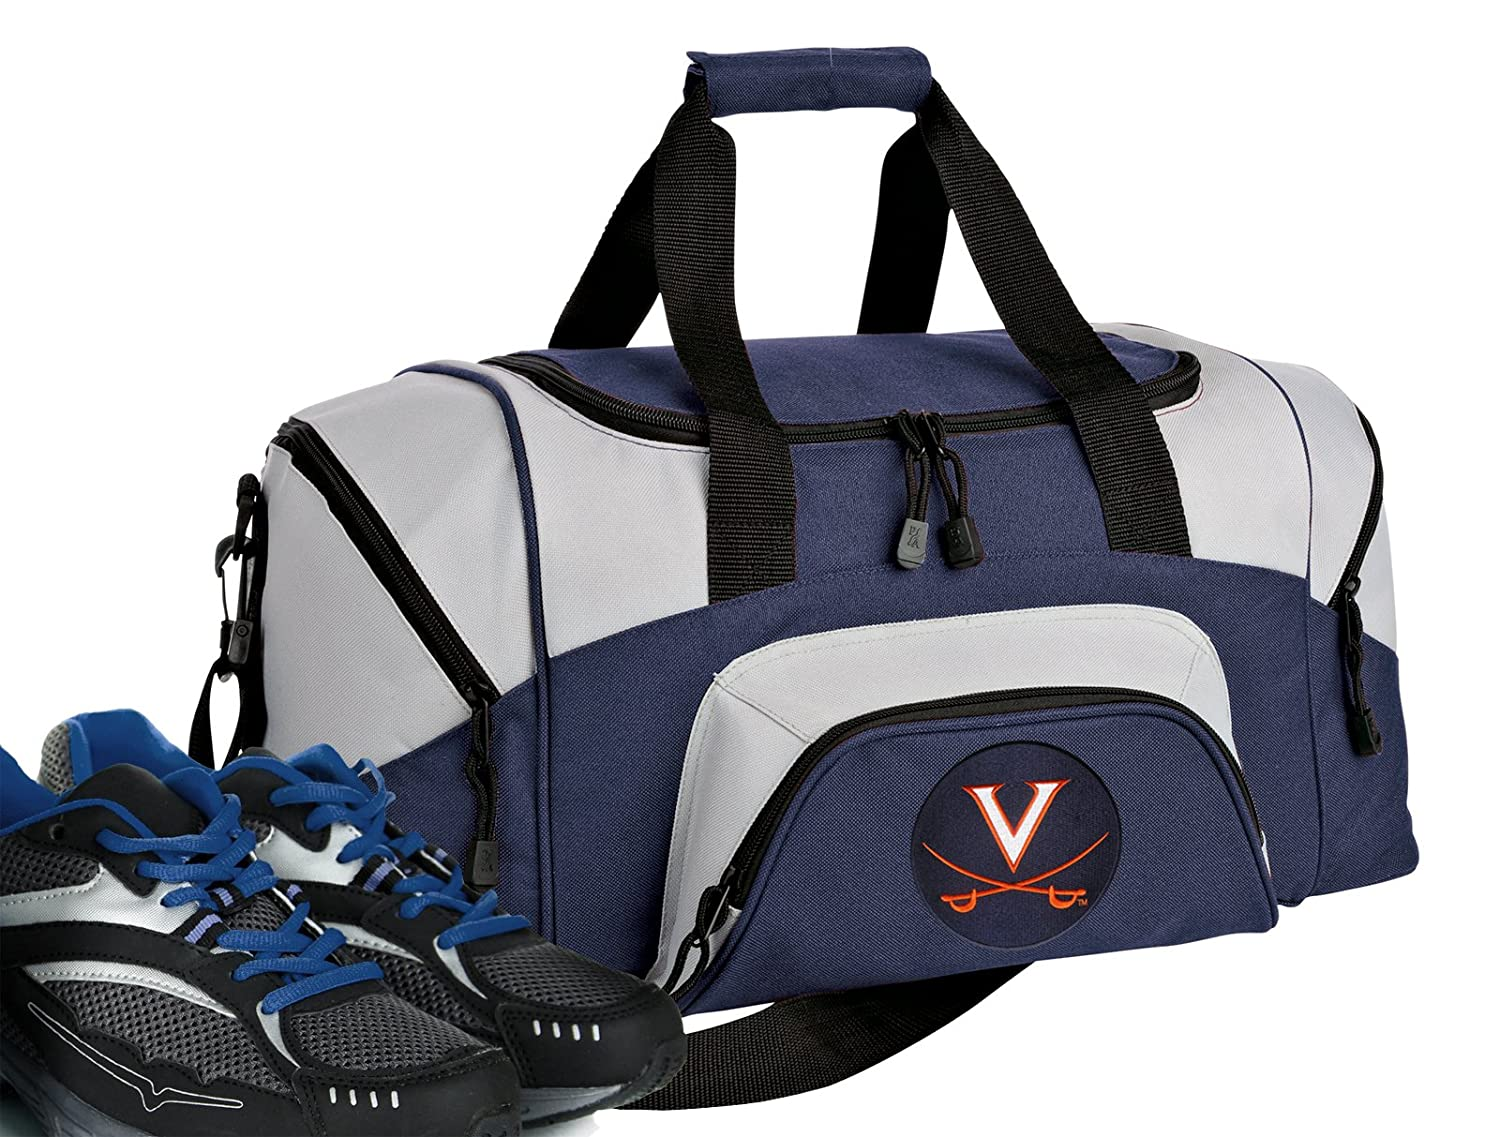 Amazon.com   Broad Bay Small University of Virginia Gym Bag Deluxe UVA  Travel Duffel Bag   Sports   Outdoors 3a6a15a1f2a60